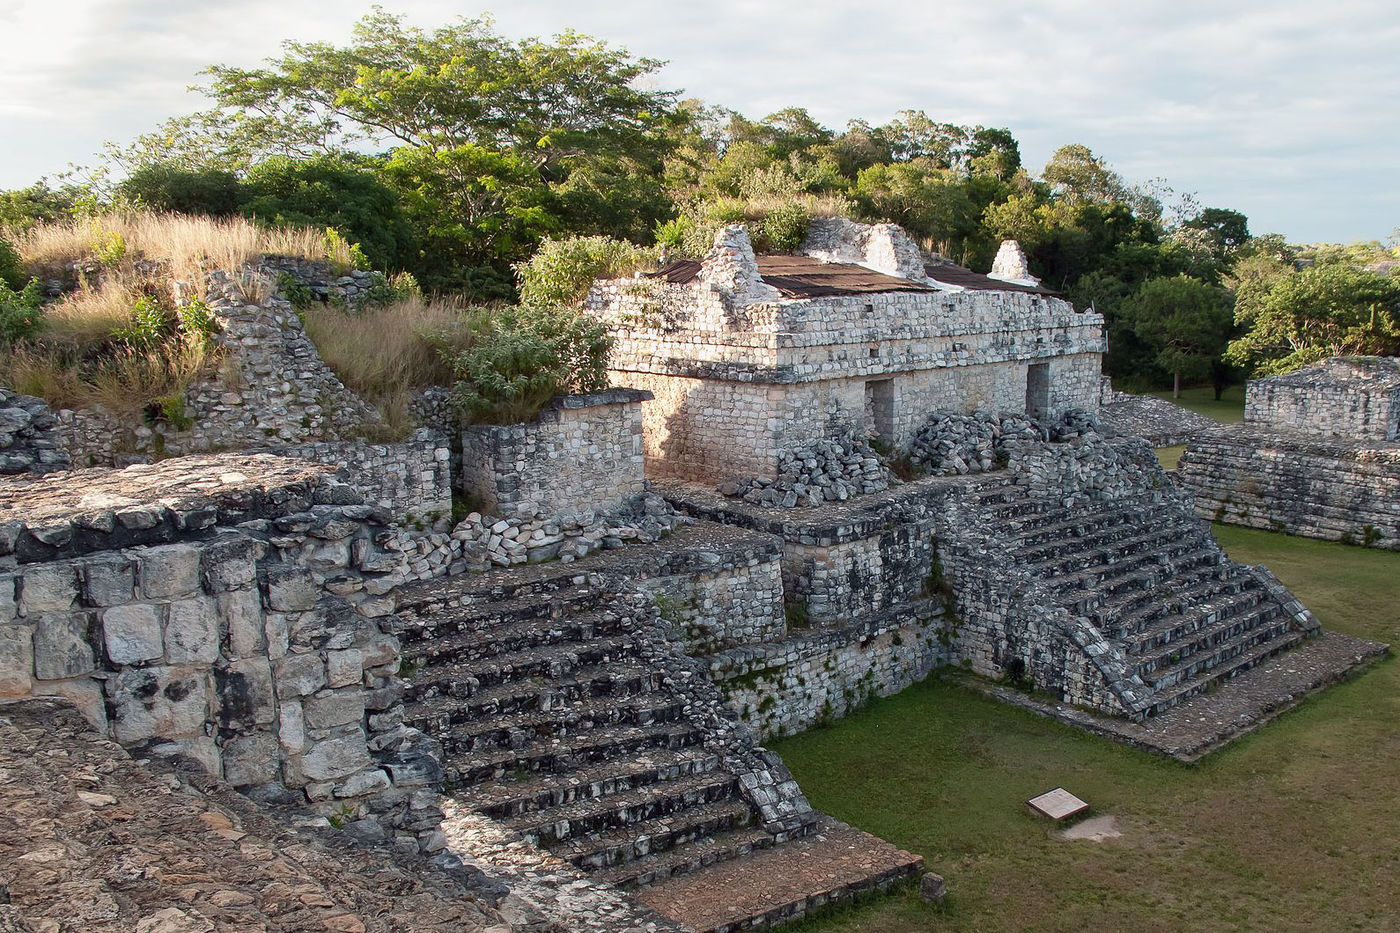 Ruins of ancient structures made out of stones. Two staircases, low walls, and part of a building are still intact.